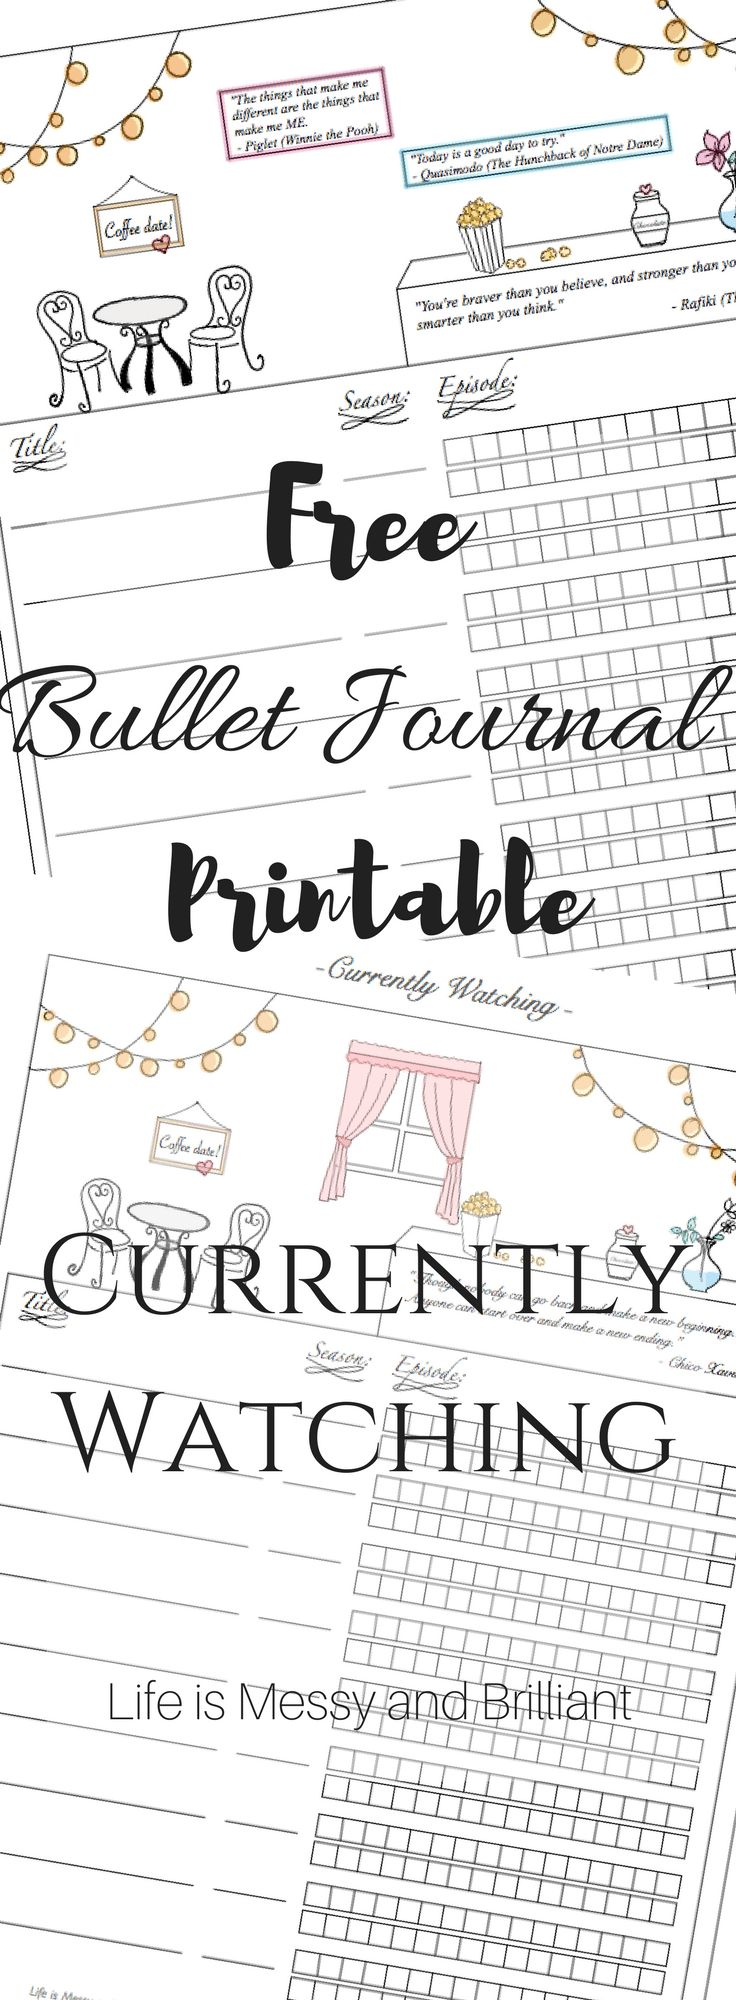 Free bullet journal printables, free printable, bullet journal, free lettering printable, bullet journal mood tracker, bullet journal layout, bullet journal setup, bullet journal weekly, bullet journal inspiration, bullet journal ideas, bullet journal printables, bullet journal monthly, how to create bullet journal, how to bullet journal, digital bullet journal, iPad bullet journal, bullet journal tutorial, art journaling, ipad lettering, currently watching printable, movies tracker